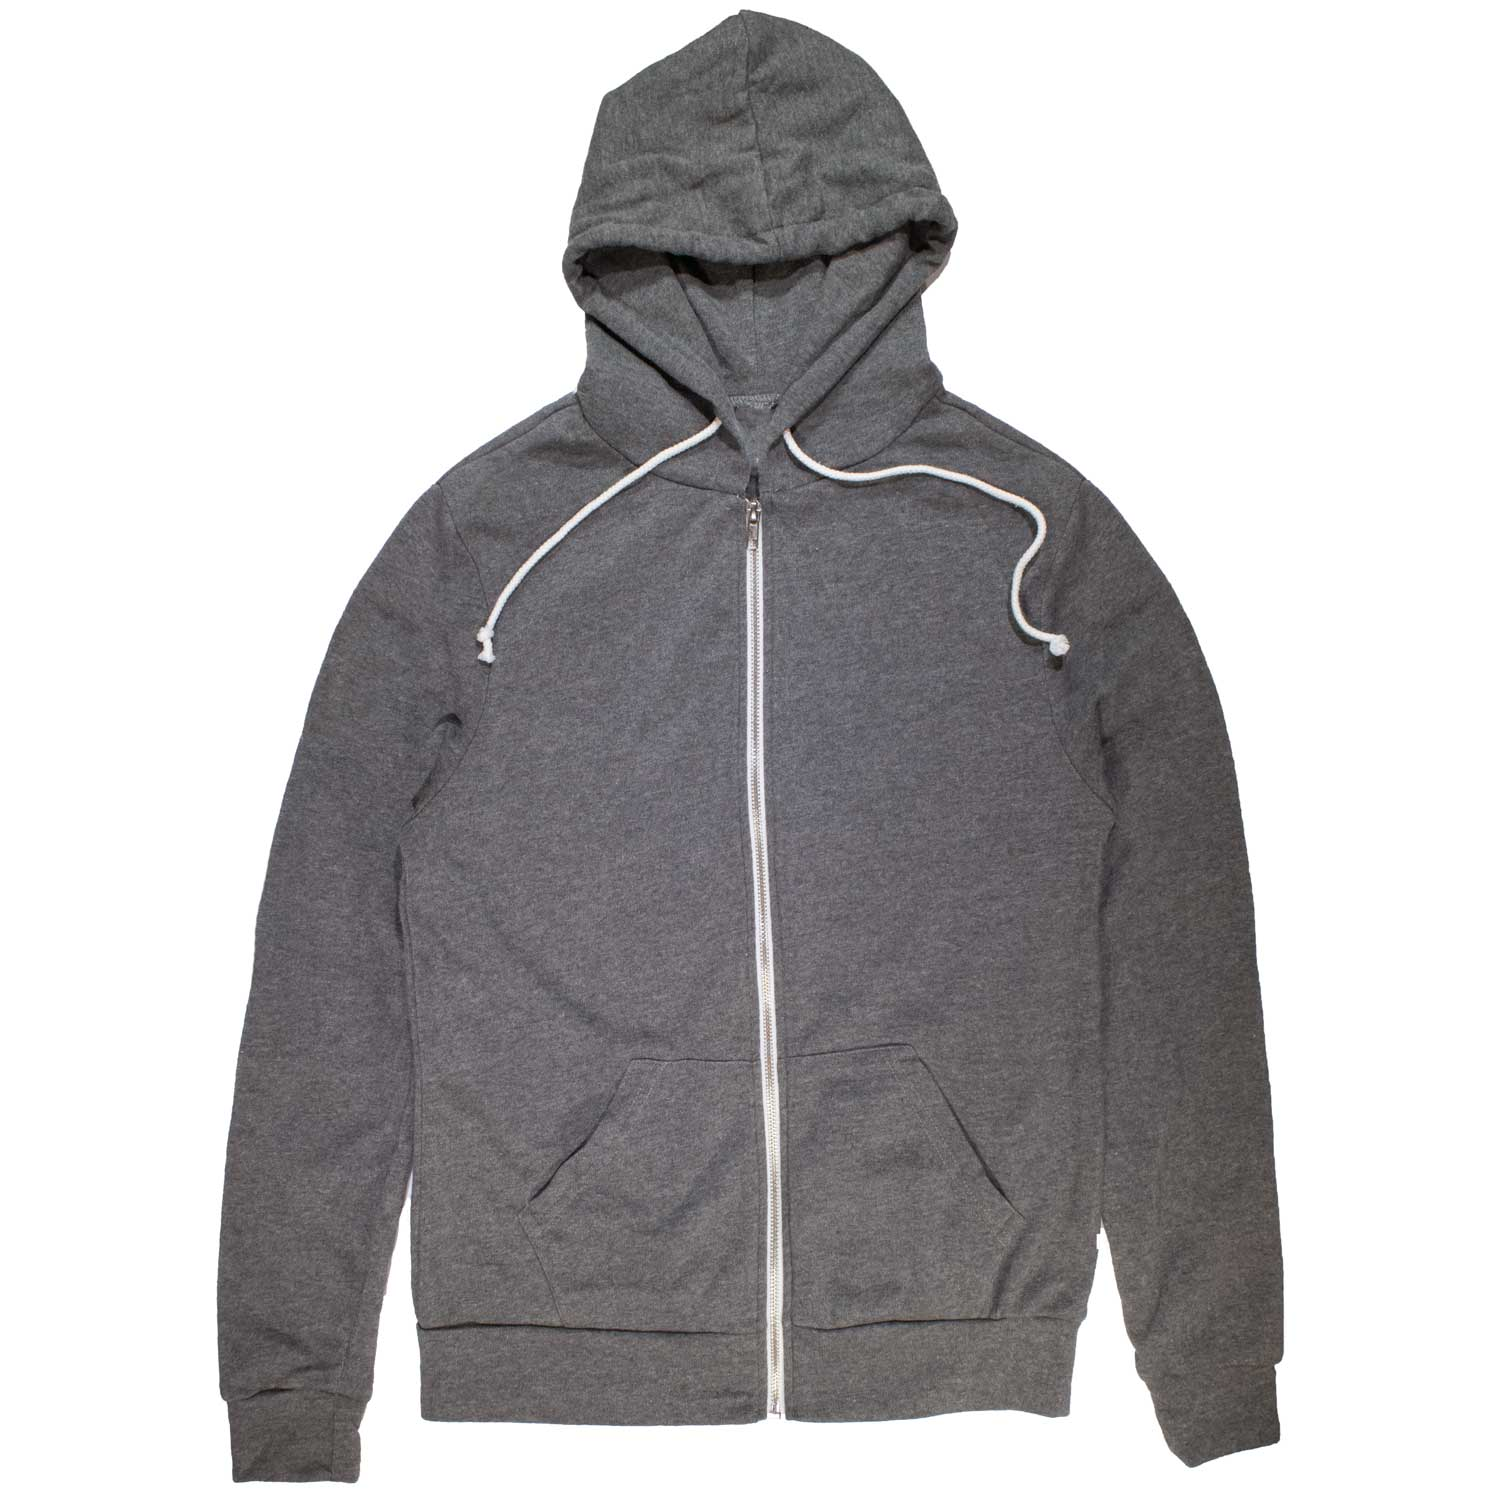 Extra Soft Zip Up Hoodie | Ethically Sourced USA Made Fleece Sweatshirt | SOLID THREADS